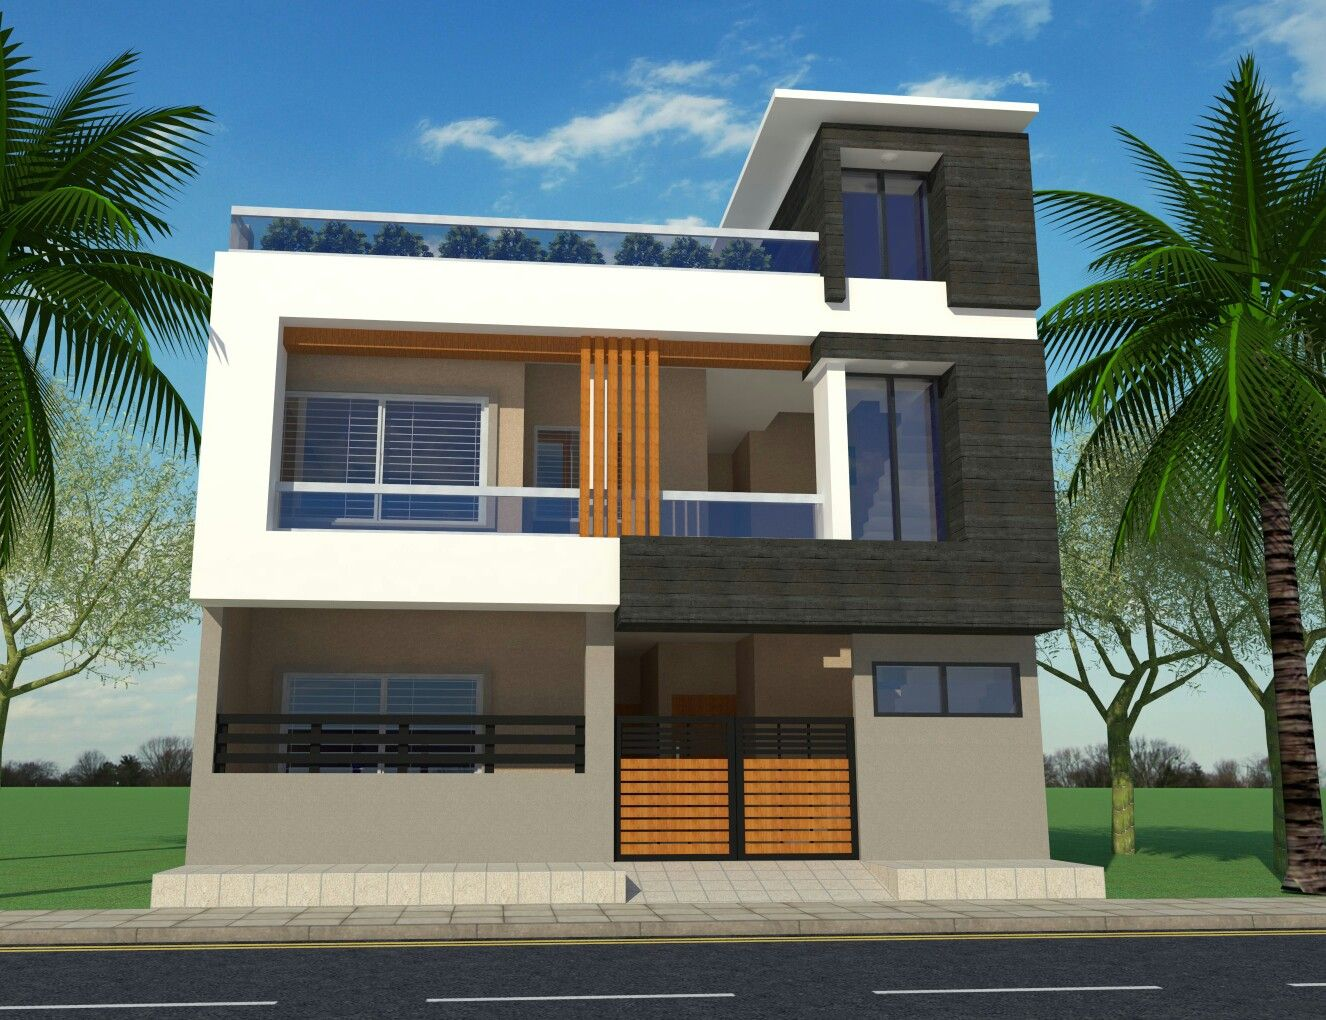 Front Elevation Of The Houses : G house front elevation modern in